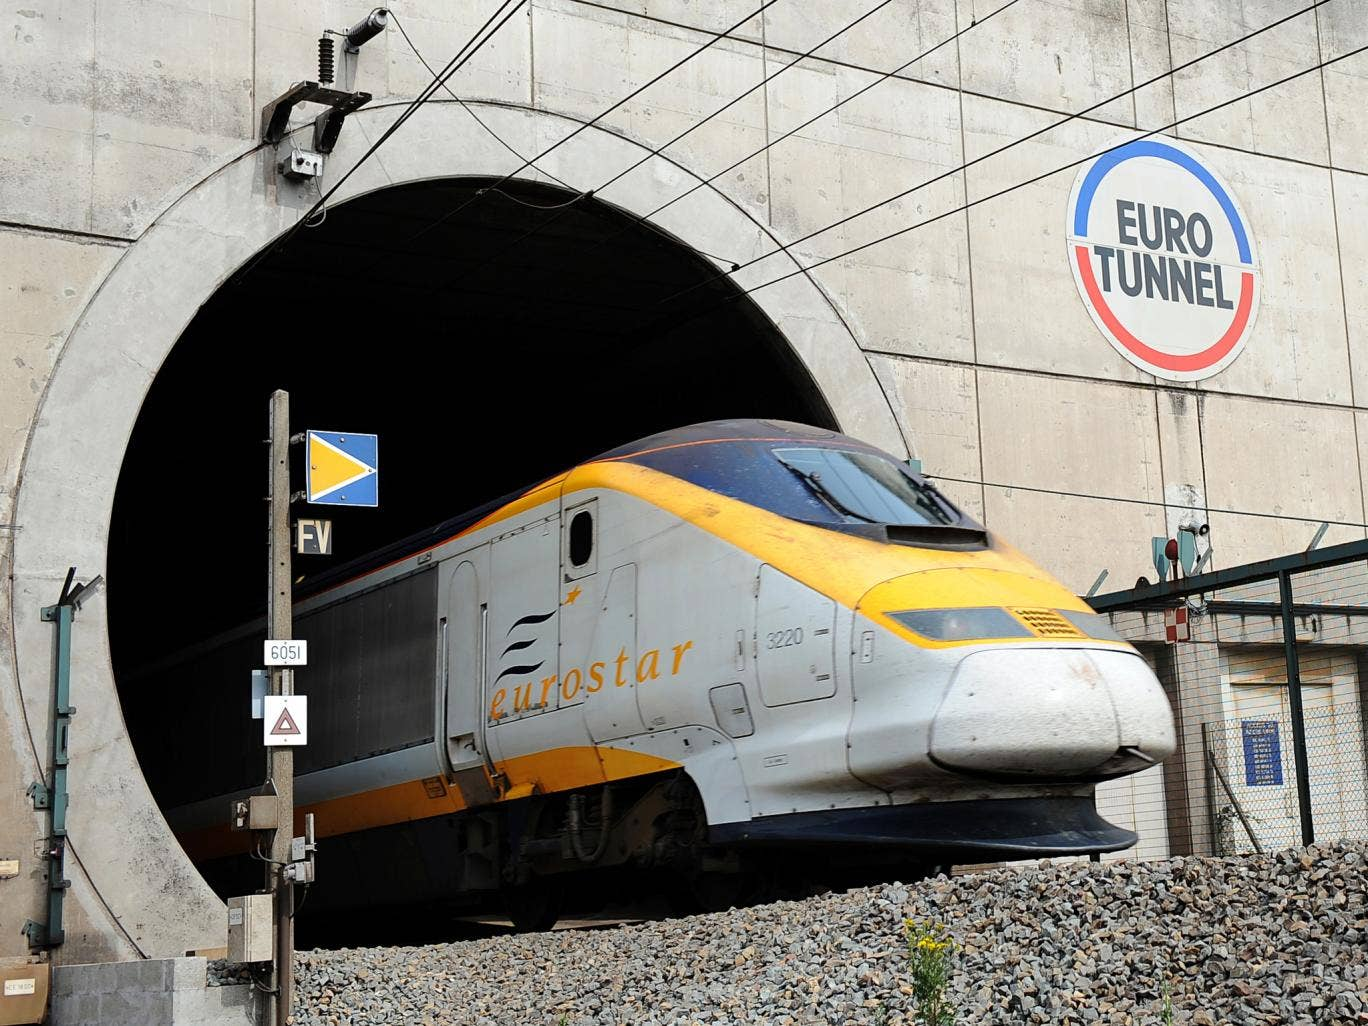 Eurostar train services between London and Paris and Brussels were also unable to pass through the tunnel